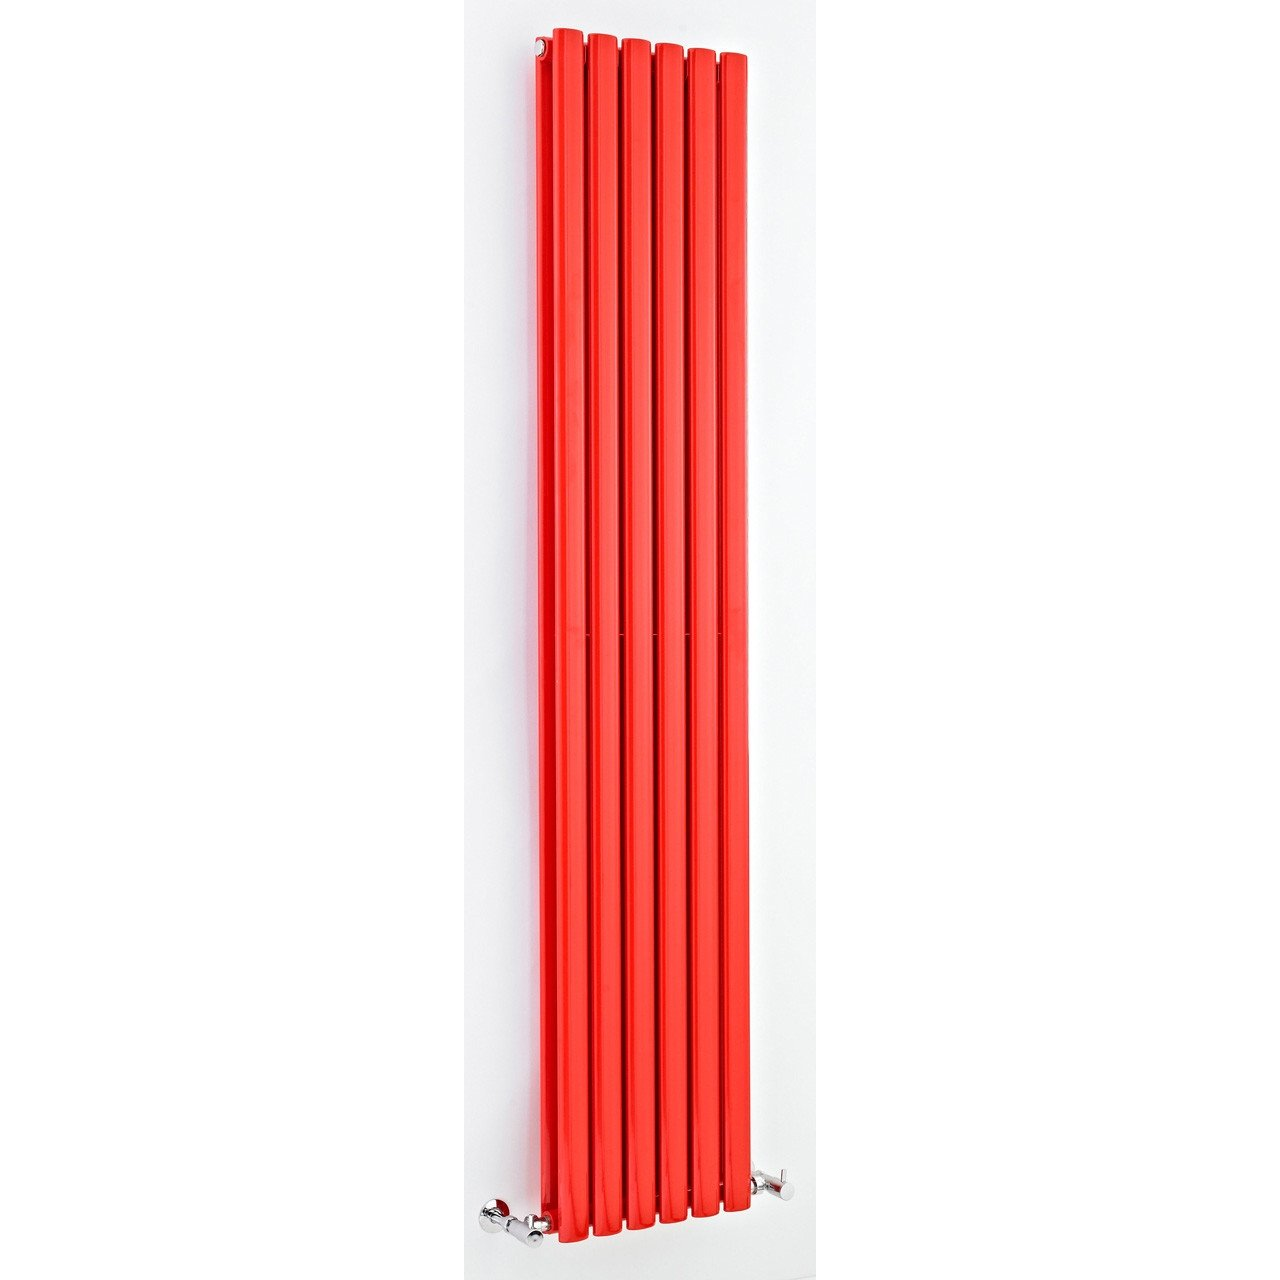 Hudson Reed Revive Double Panel Radiator 1800mm x 354mm - HRE003